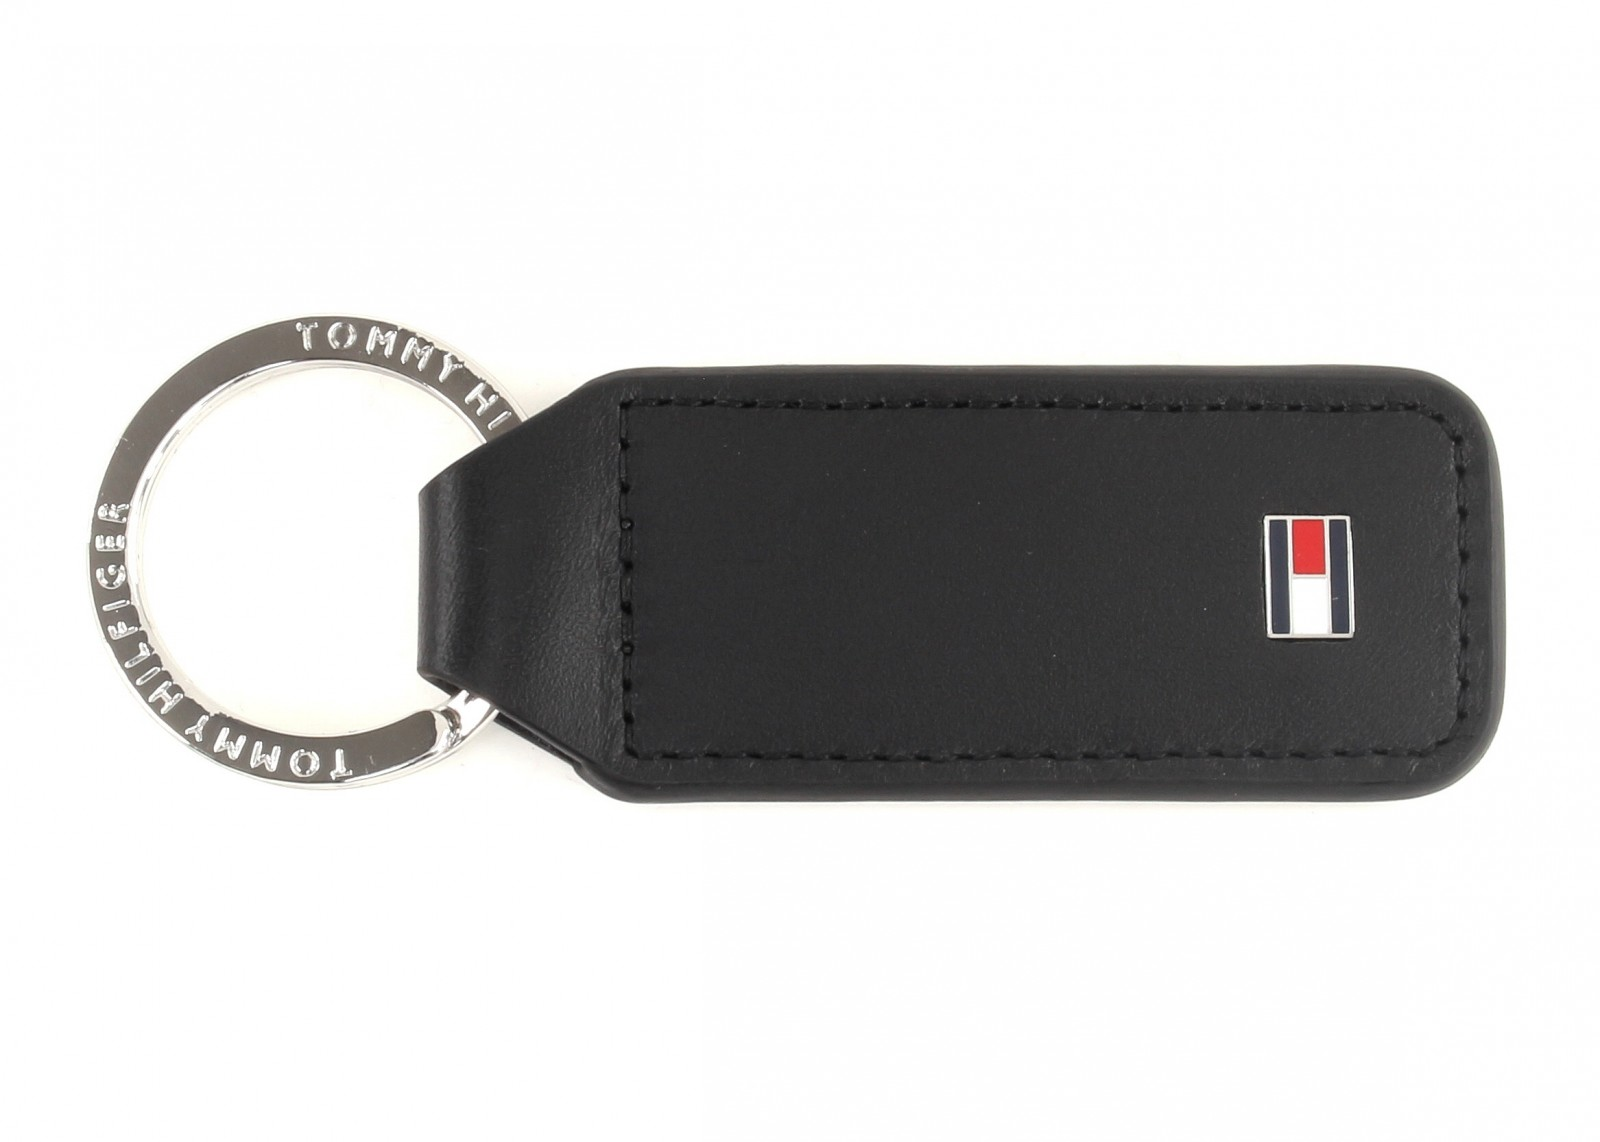 c6547795 ... Invoice and sofortüberweisung.deTOMMY HILFIGER Eton CC and Coin Pocket  Gift Box Black / 69,90 €*Only possible if you pay by Paypal, Amazon  Payments, ...